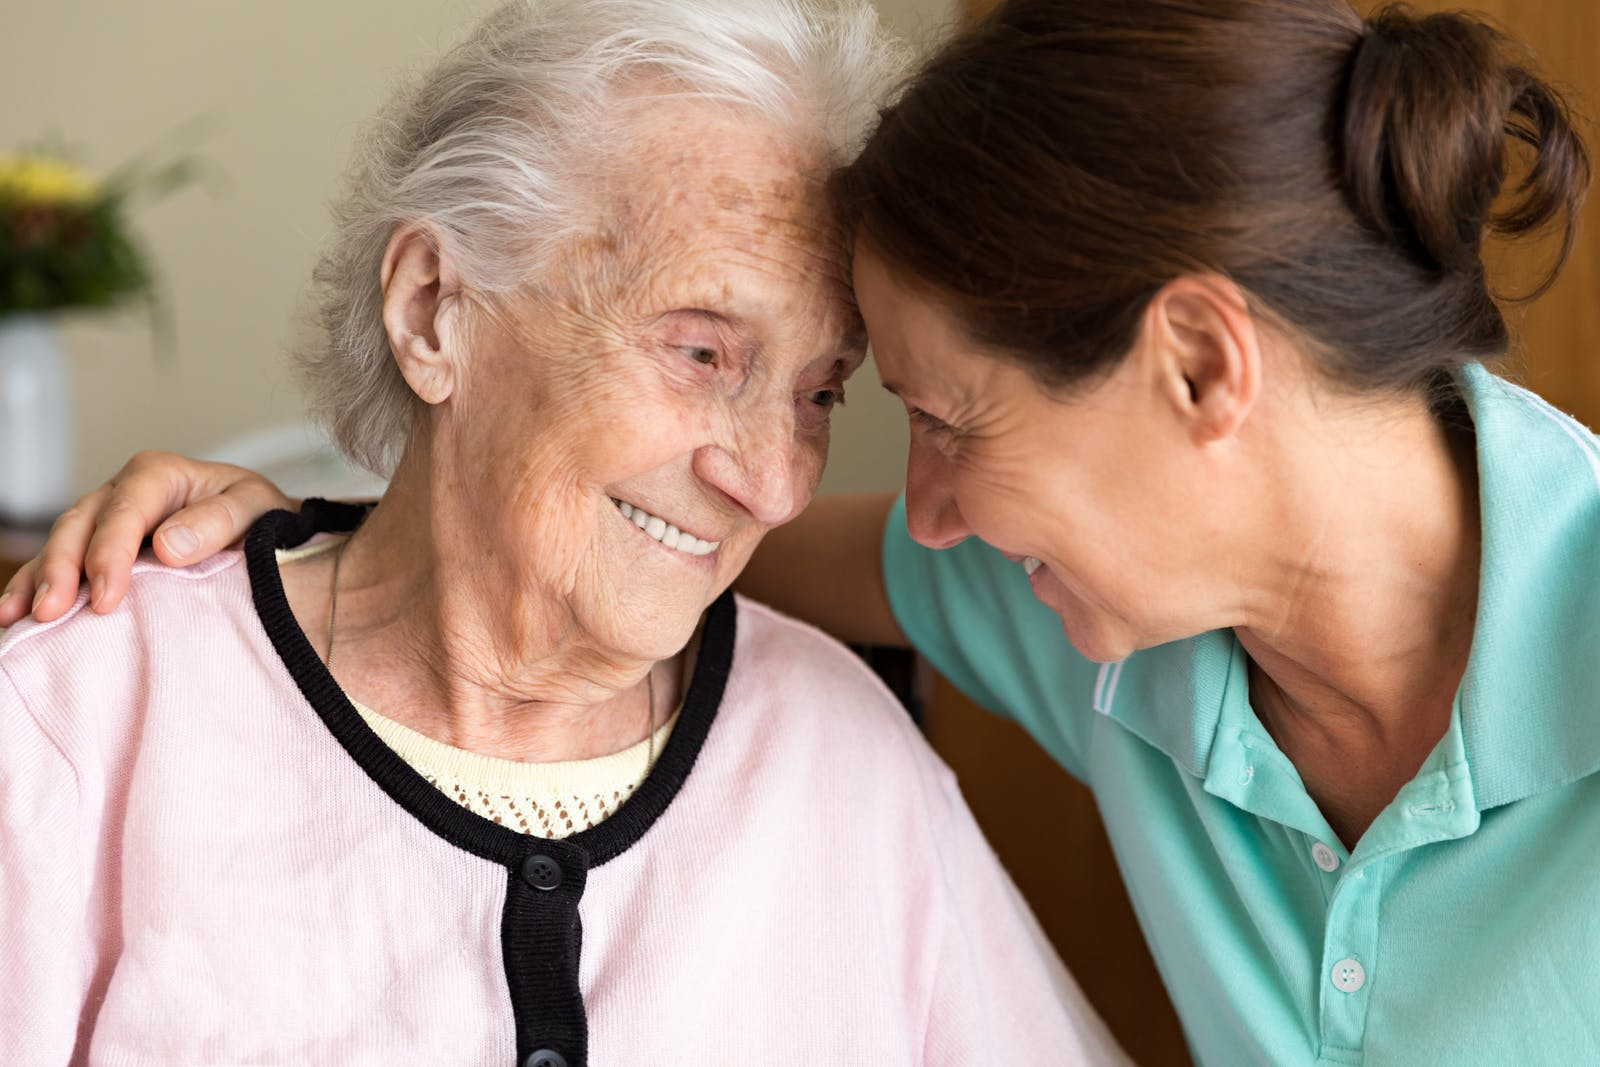 Dementia and Occupational Therapy - Home caregiver and senior adult woman